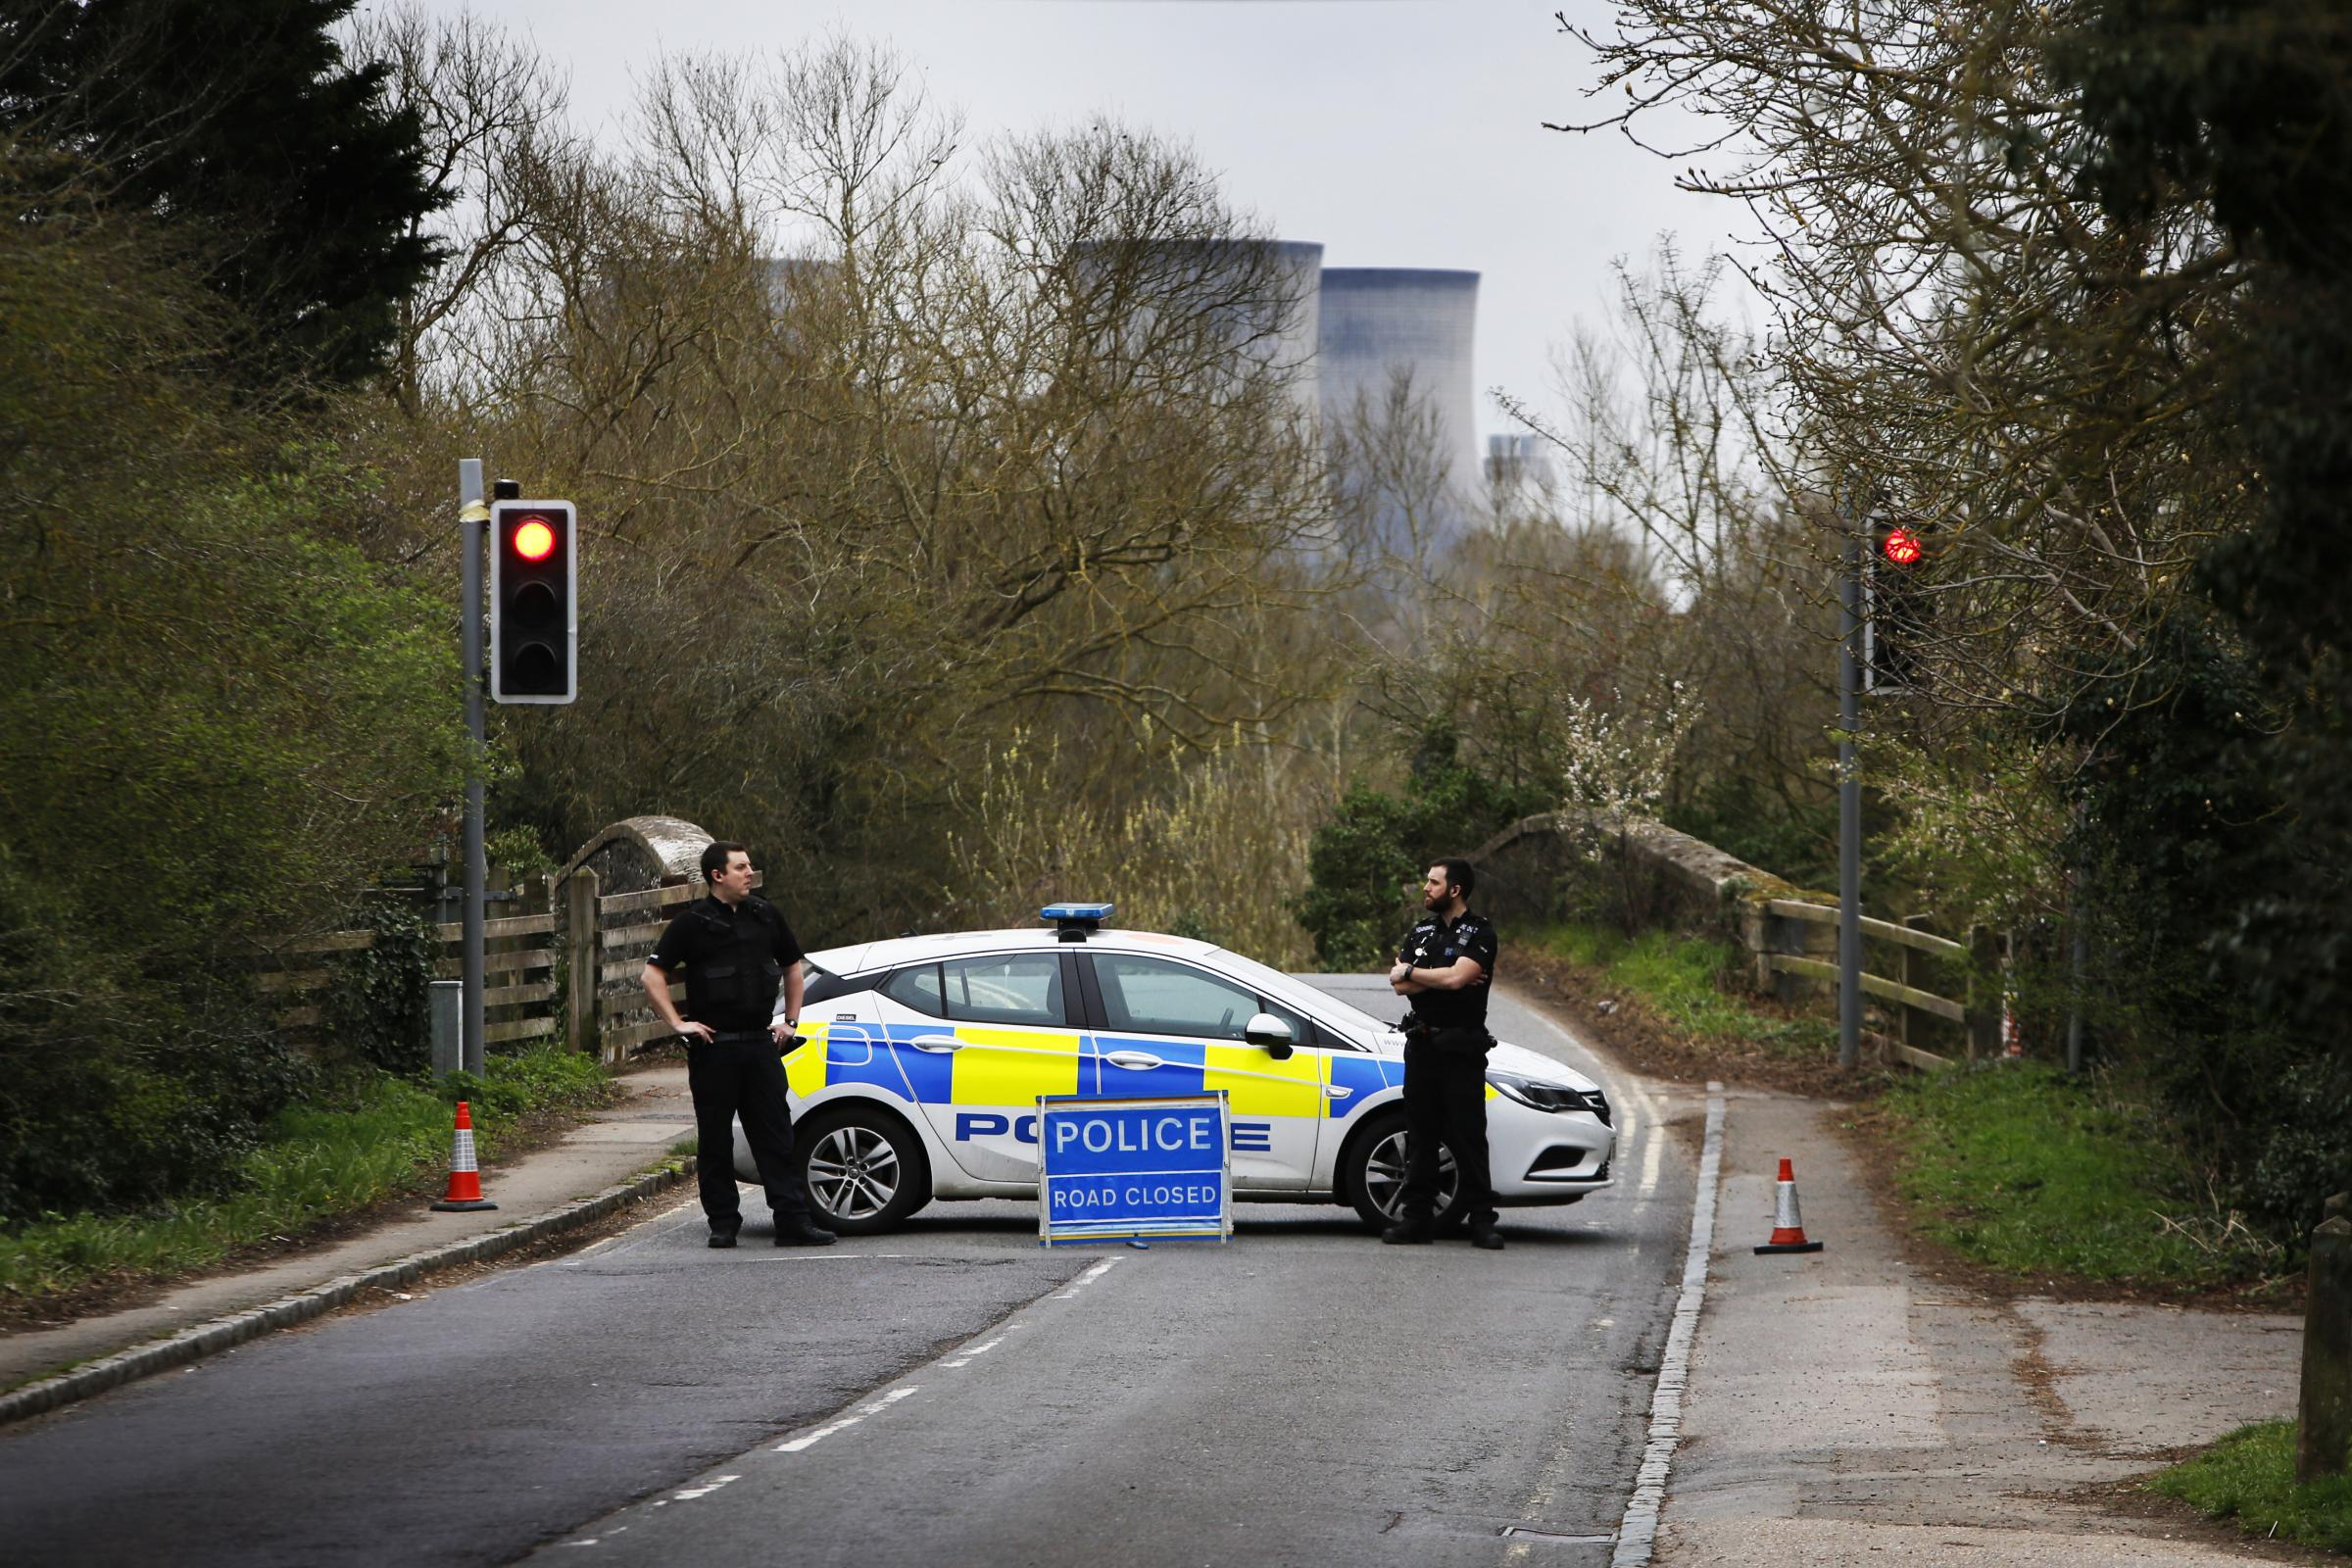 Police update after search for man at Culham bridge